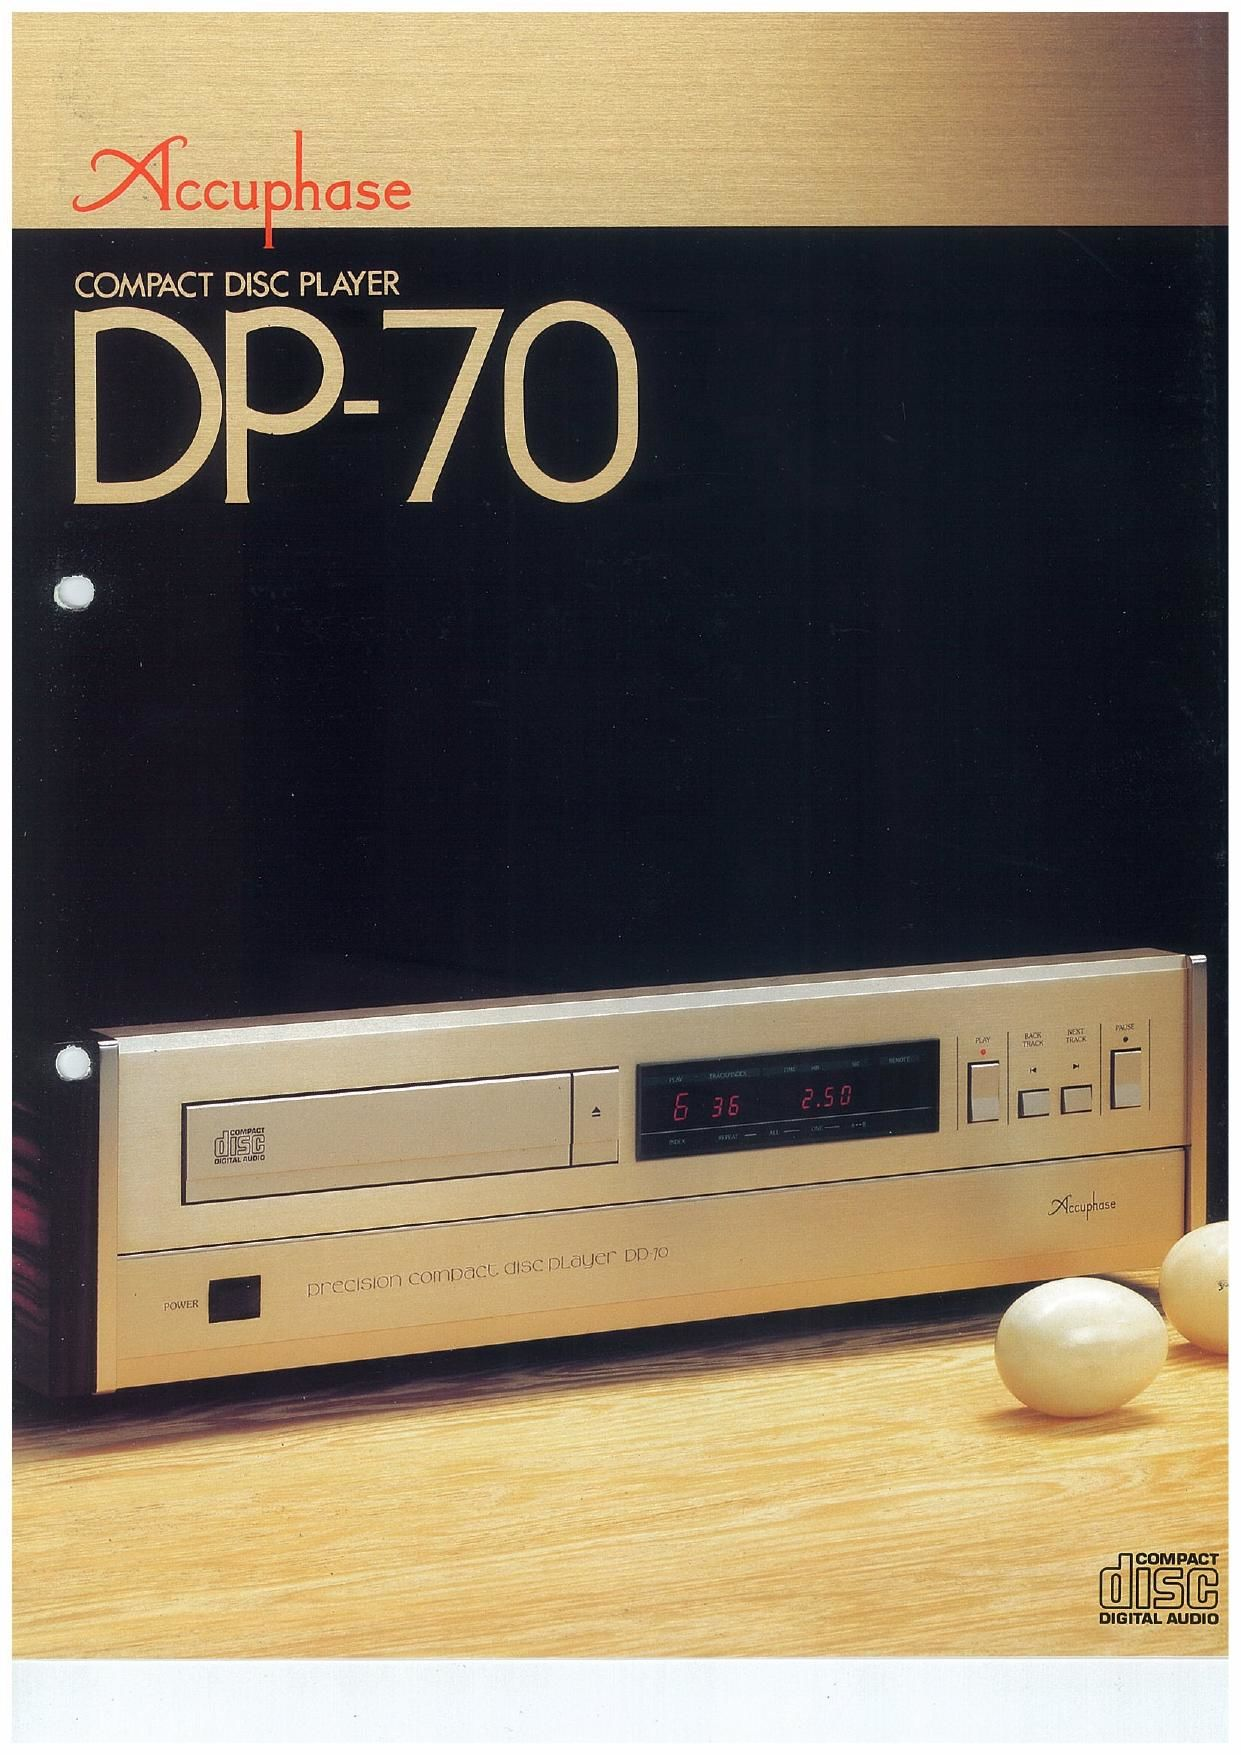 Accuphase DP 70 Brochure